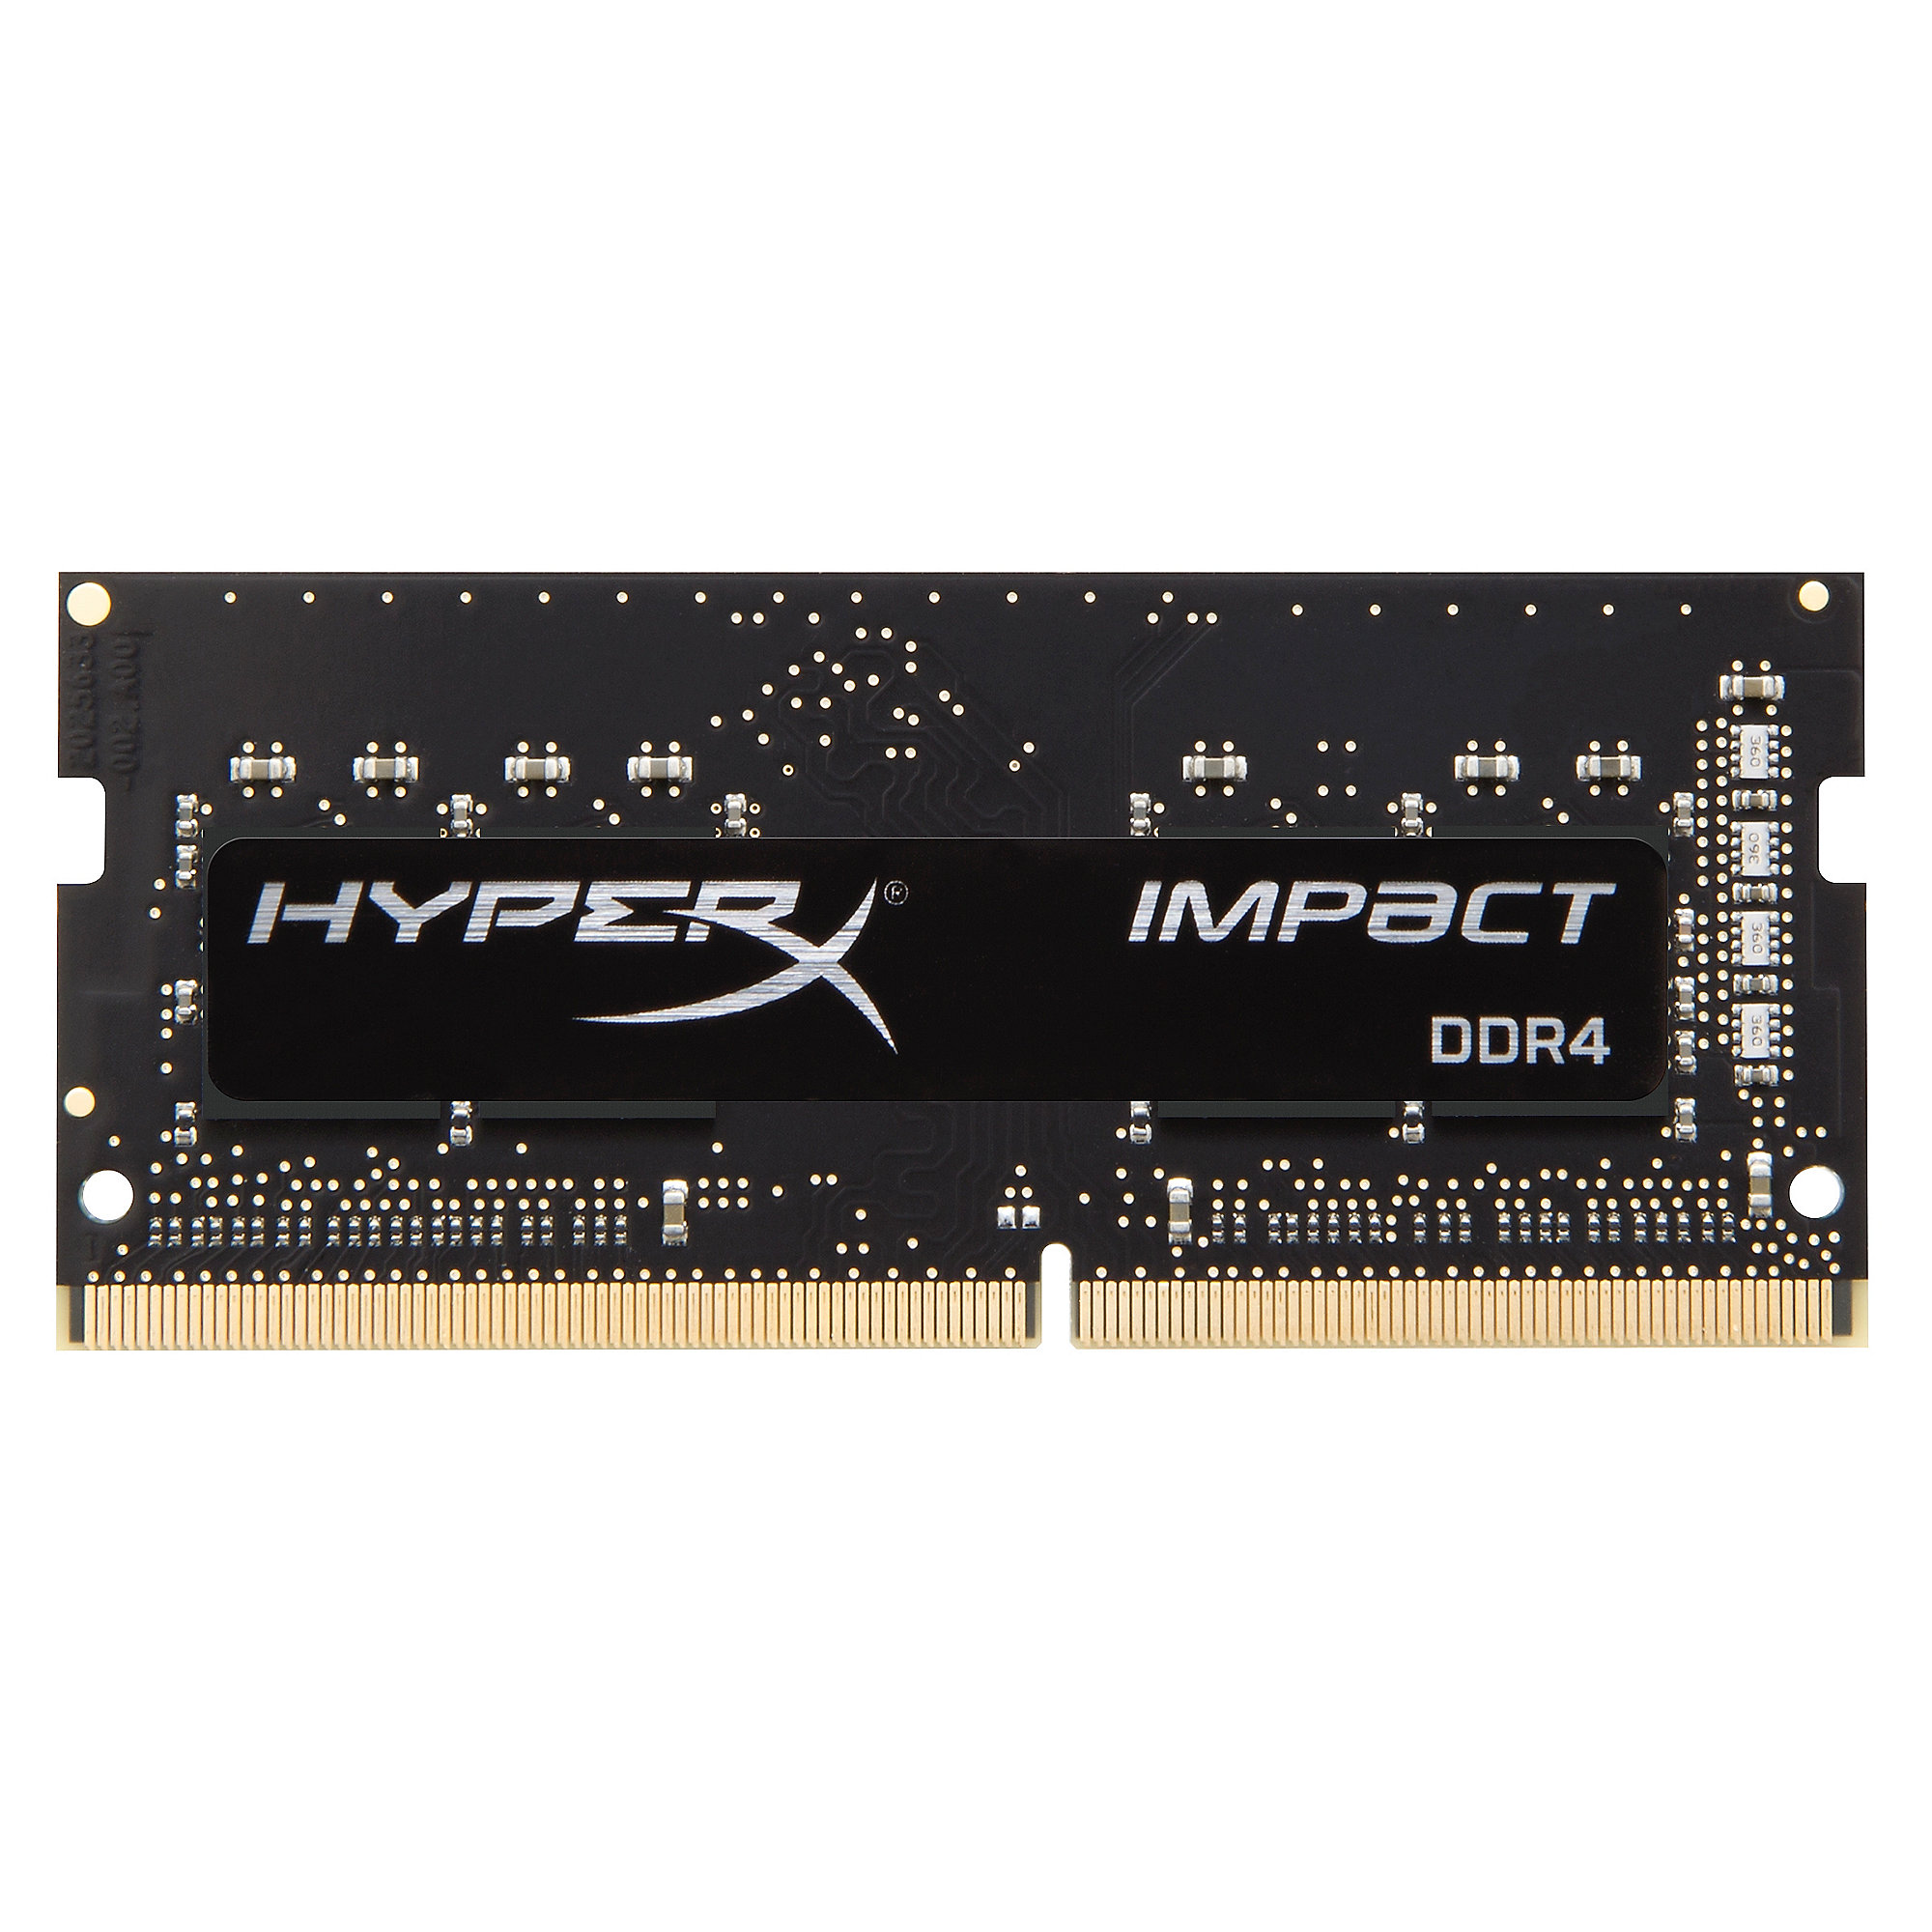 4GB HyperX Impact DDR4-2133 CL13 SO-DIMM RAM